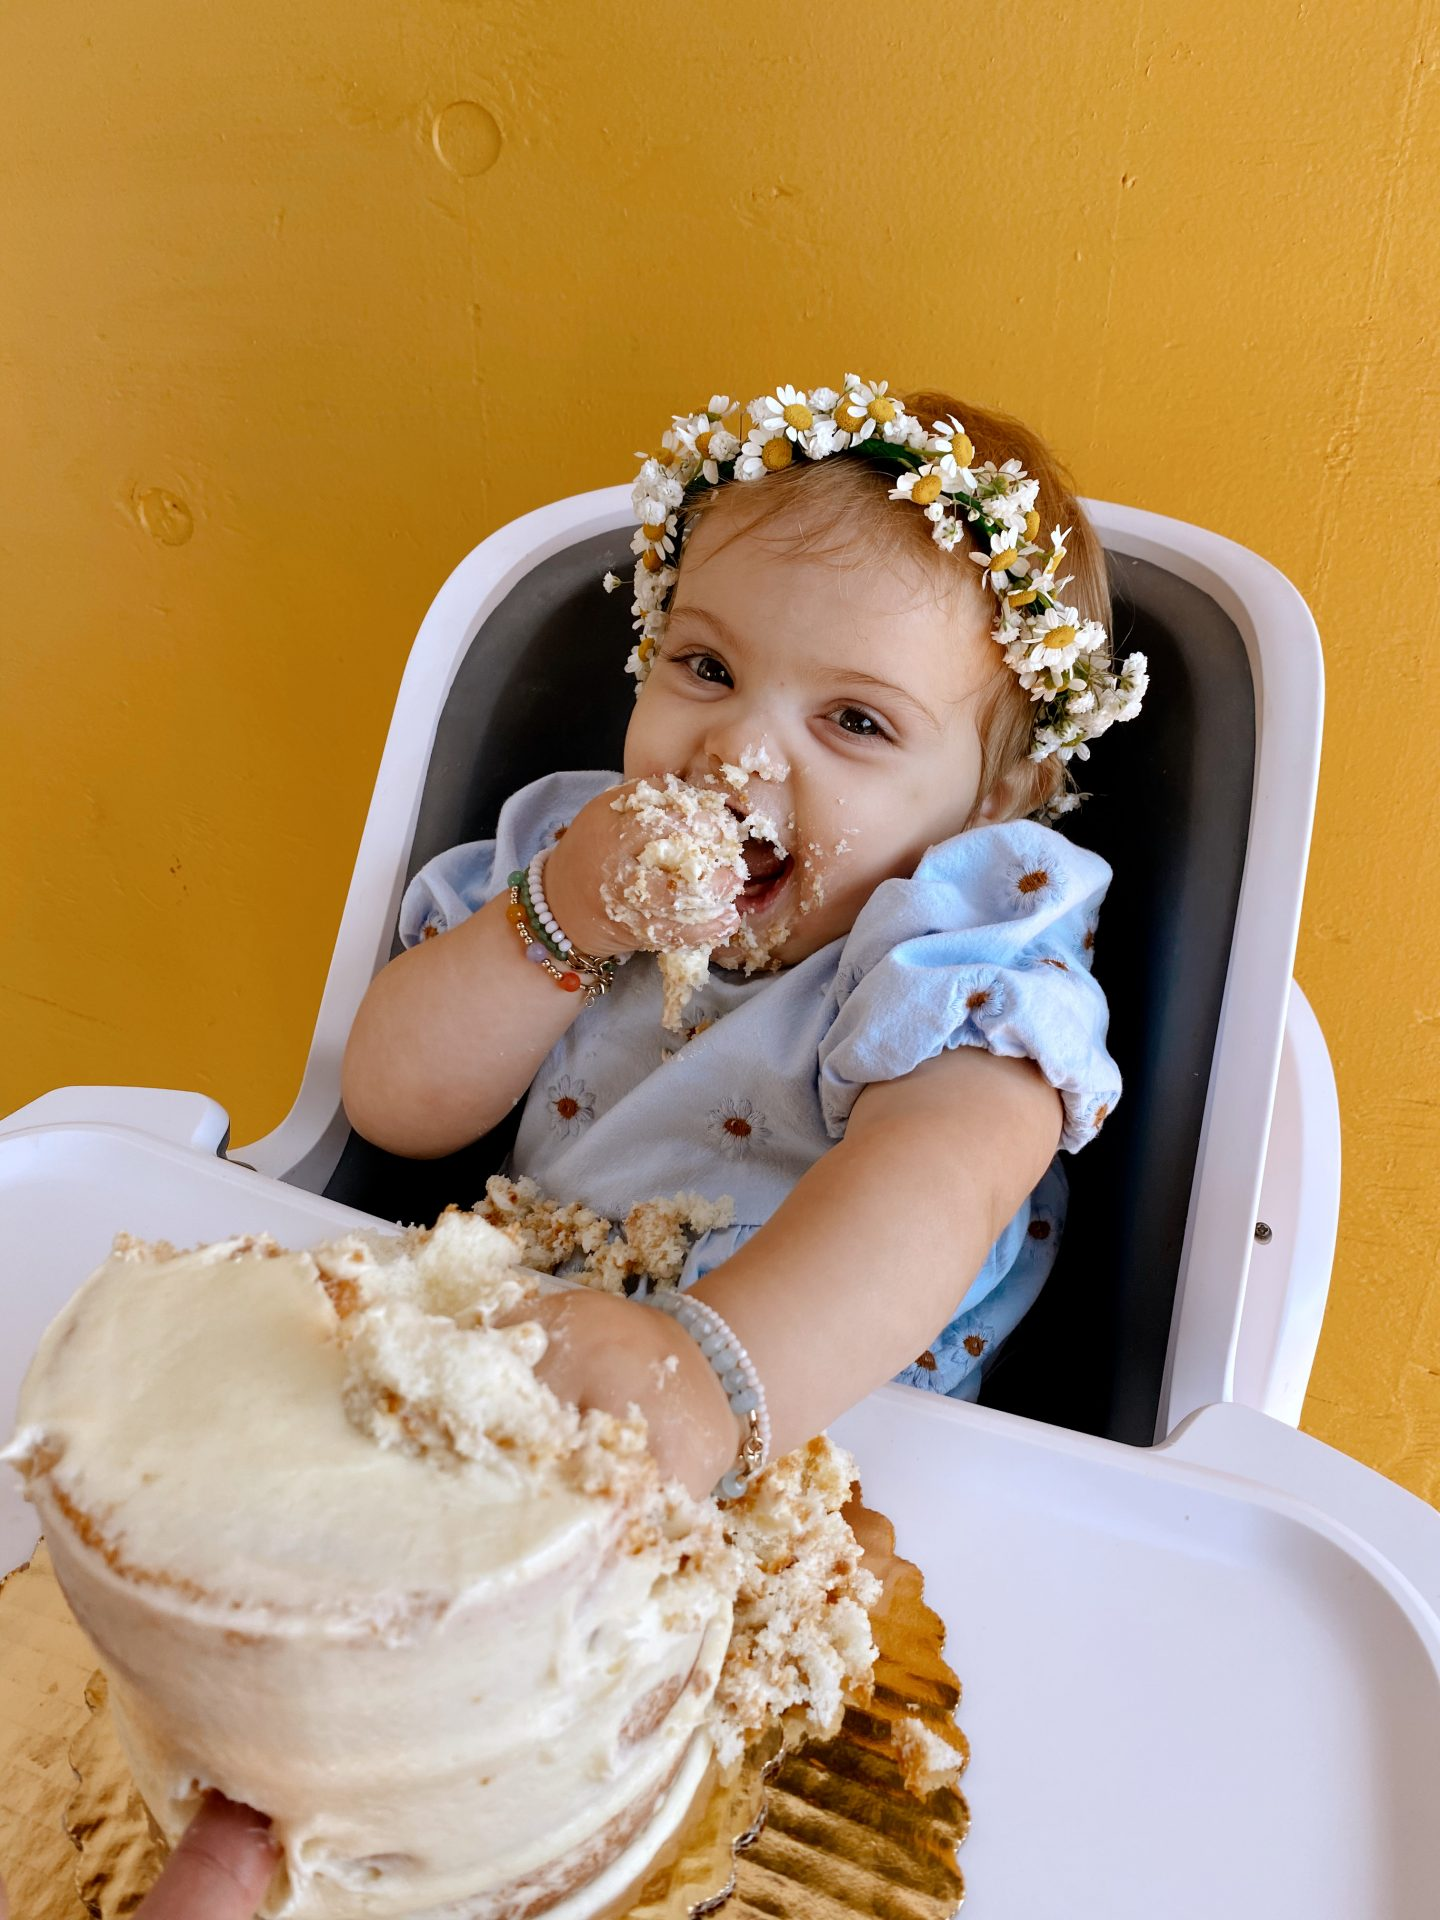 Daisy Theme Party by popular San Diego lifestyle blog, Navy Grace: image of a baby wearing a blue daisy print Zara dress, Briar Baby HONEY BEAR bonnet and daisy crown while sitting in a high chair eating a tiered birthday cake.